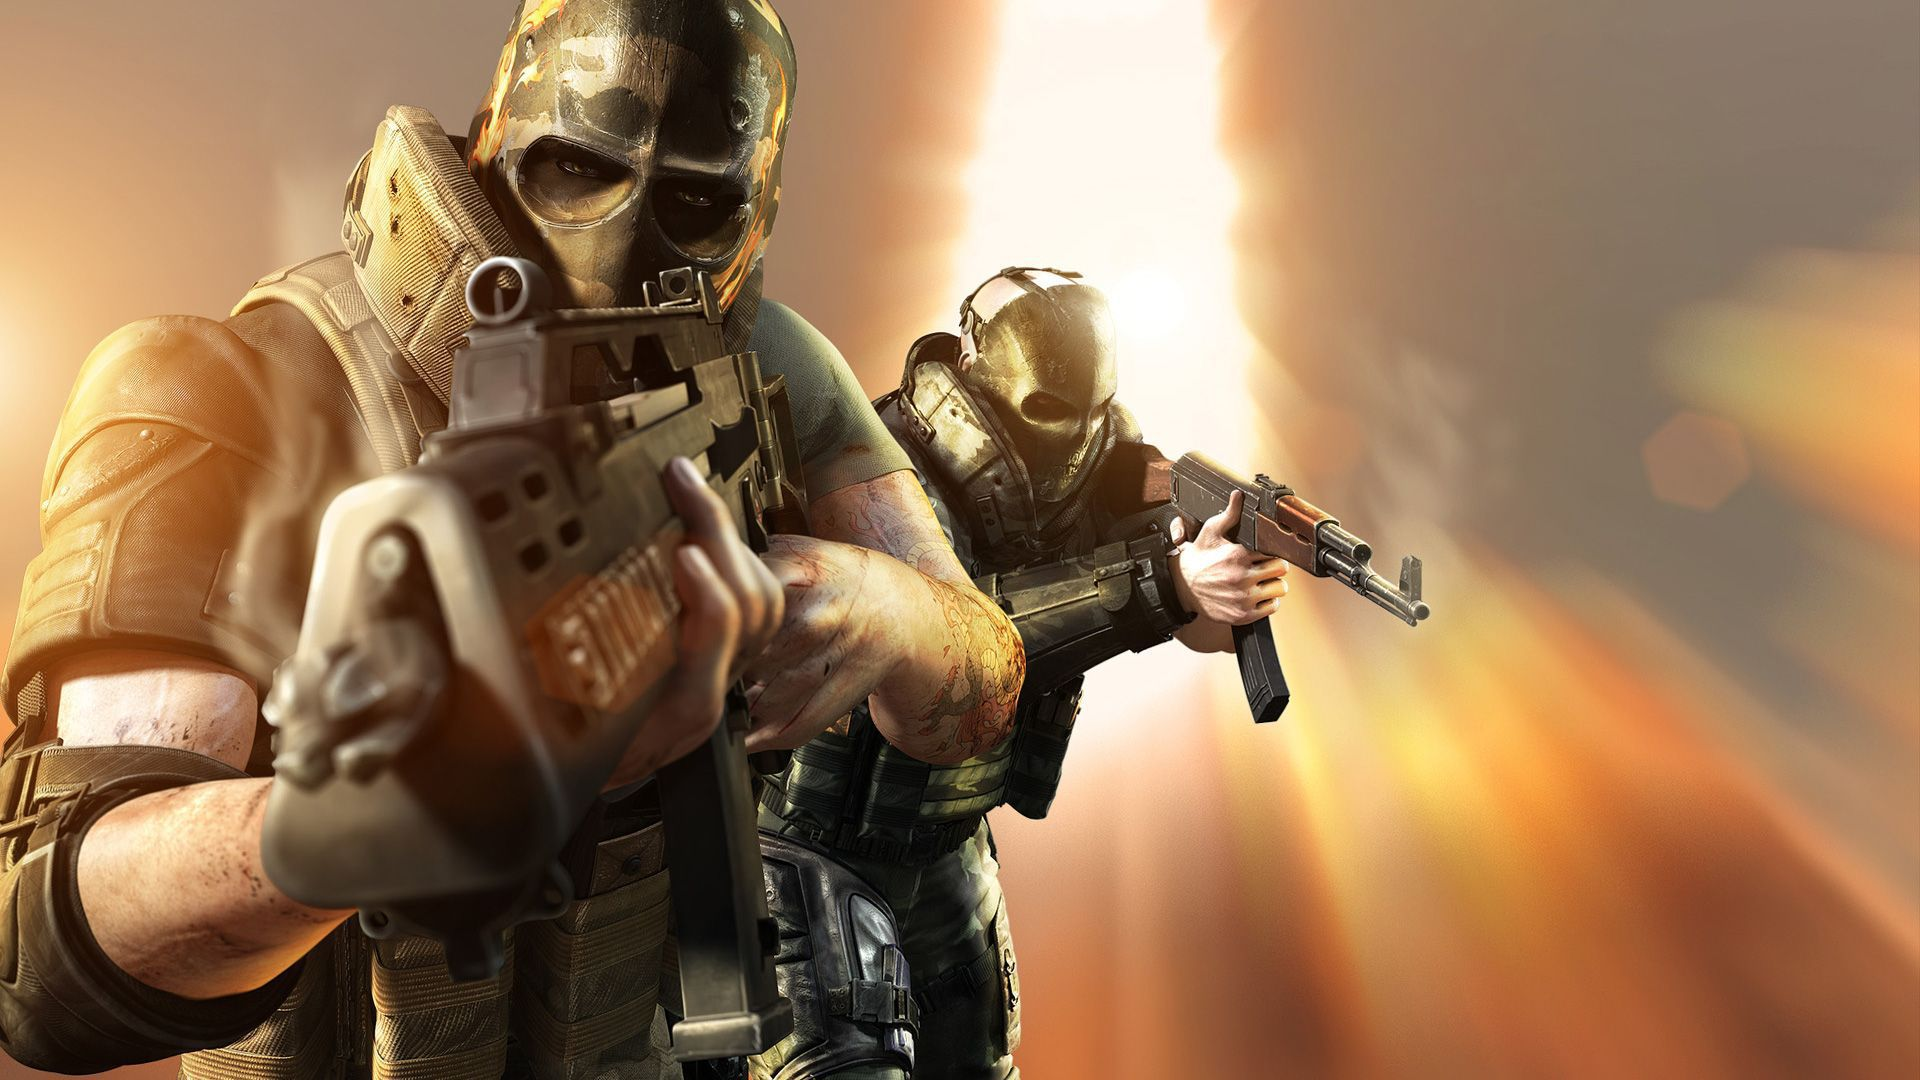 Army Of Two Wallpapers HD